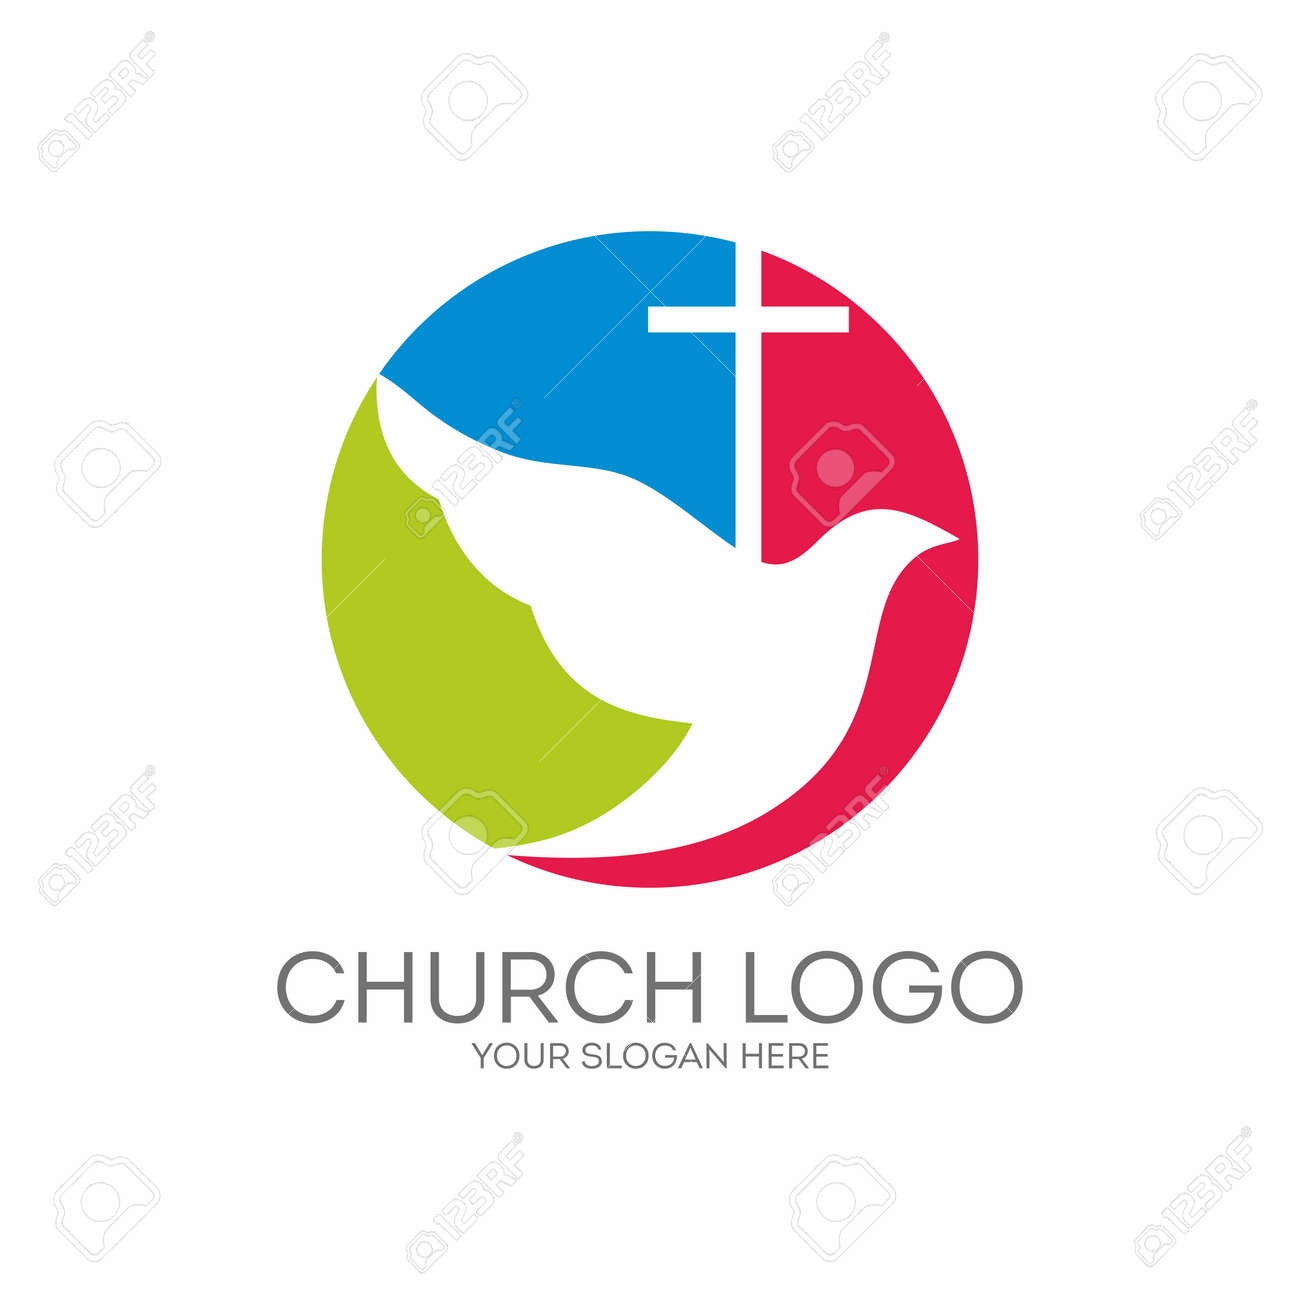 Church logo round dove holy spirit and cross royalty free church logo round dove holy spirit and cross stock vector 46647689 altavistaventures Choice Image